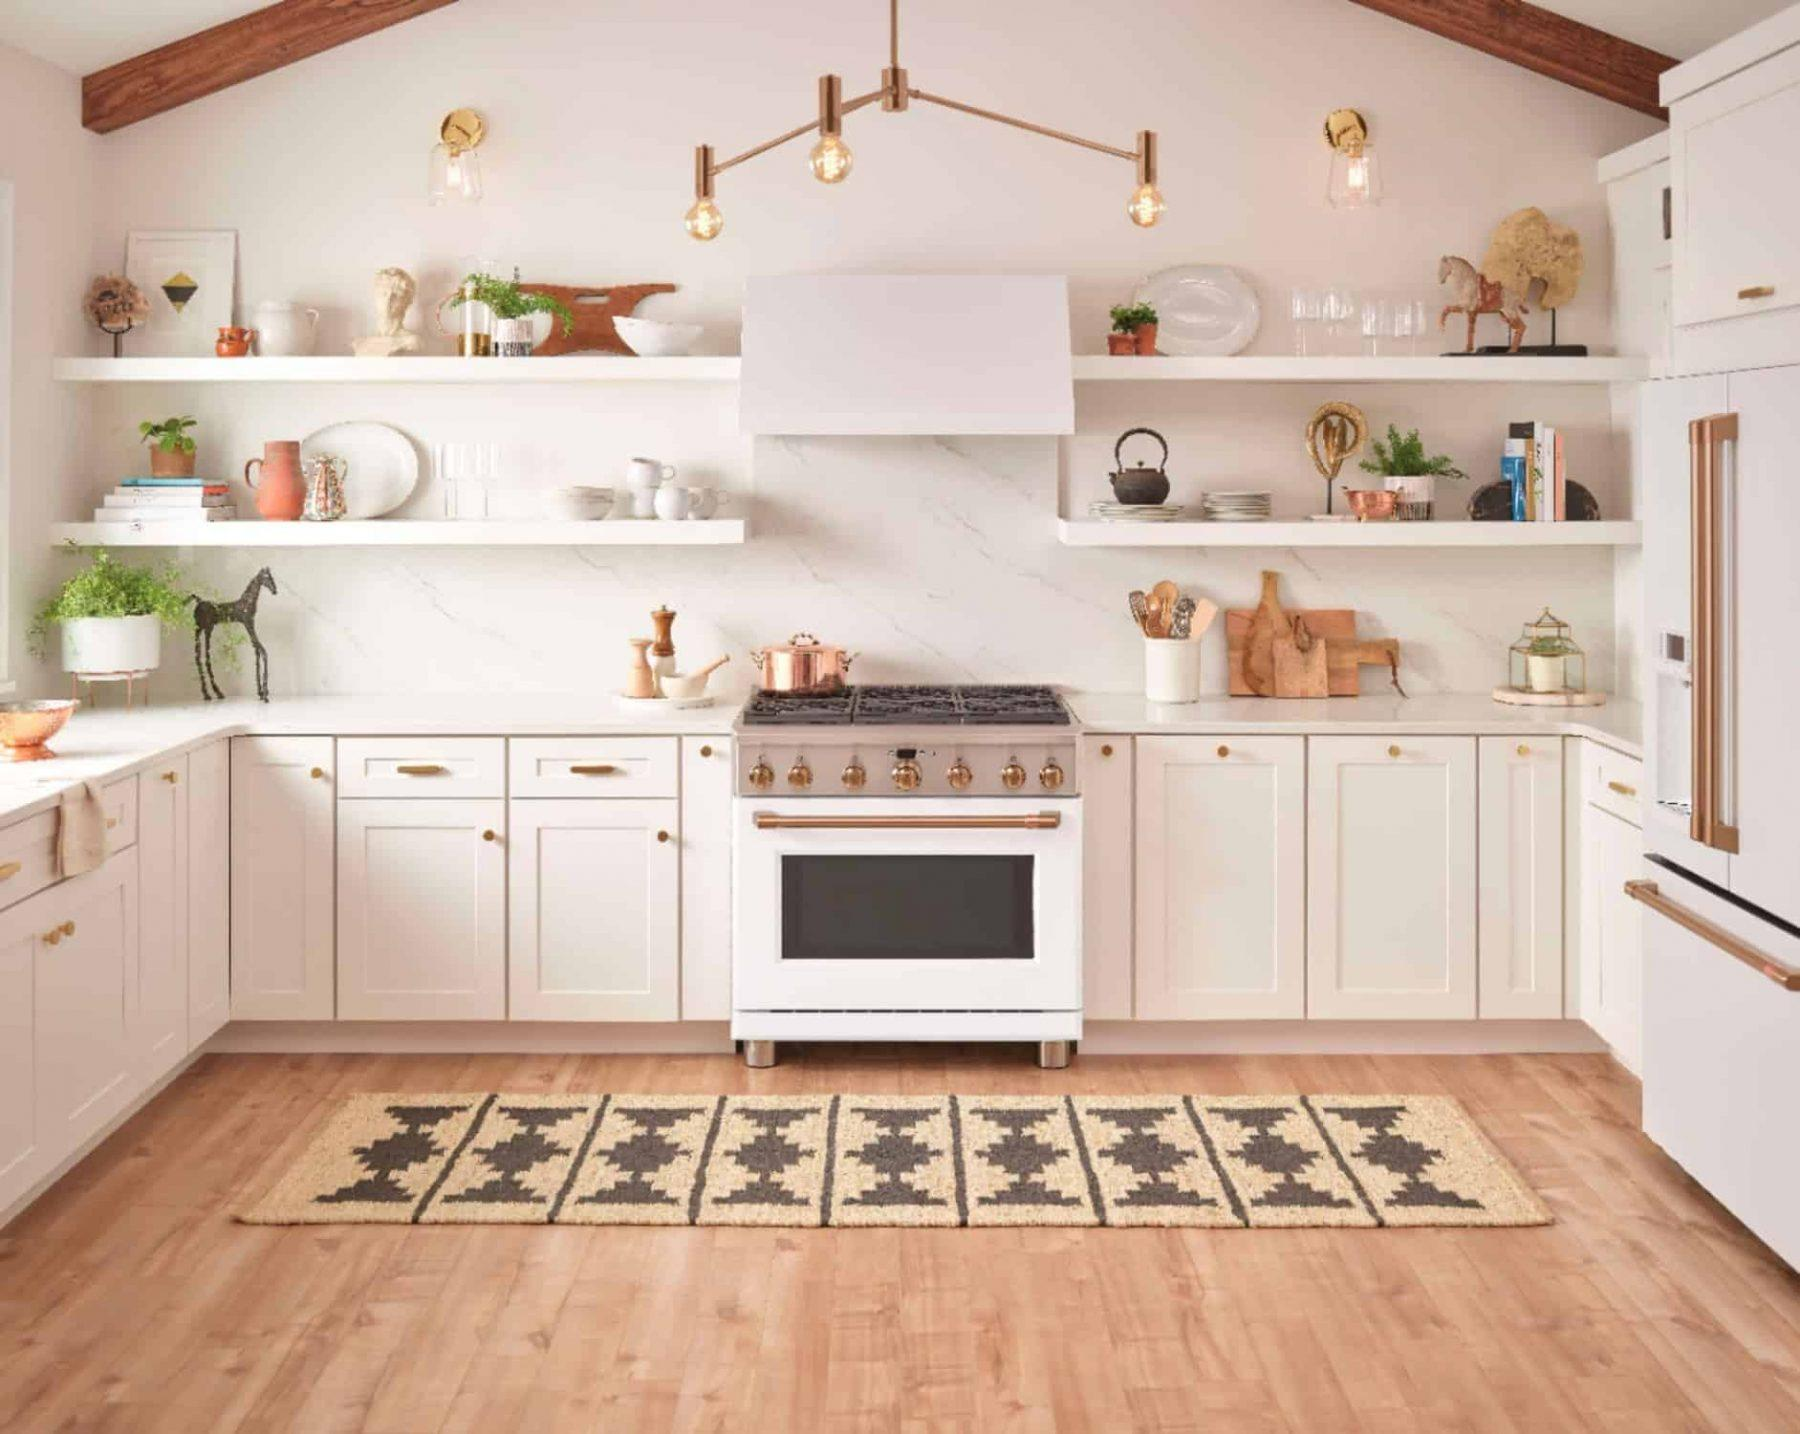 Save On The Cafe Matte Collection By Ge At Best Buy